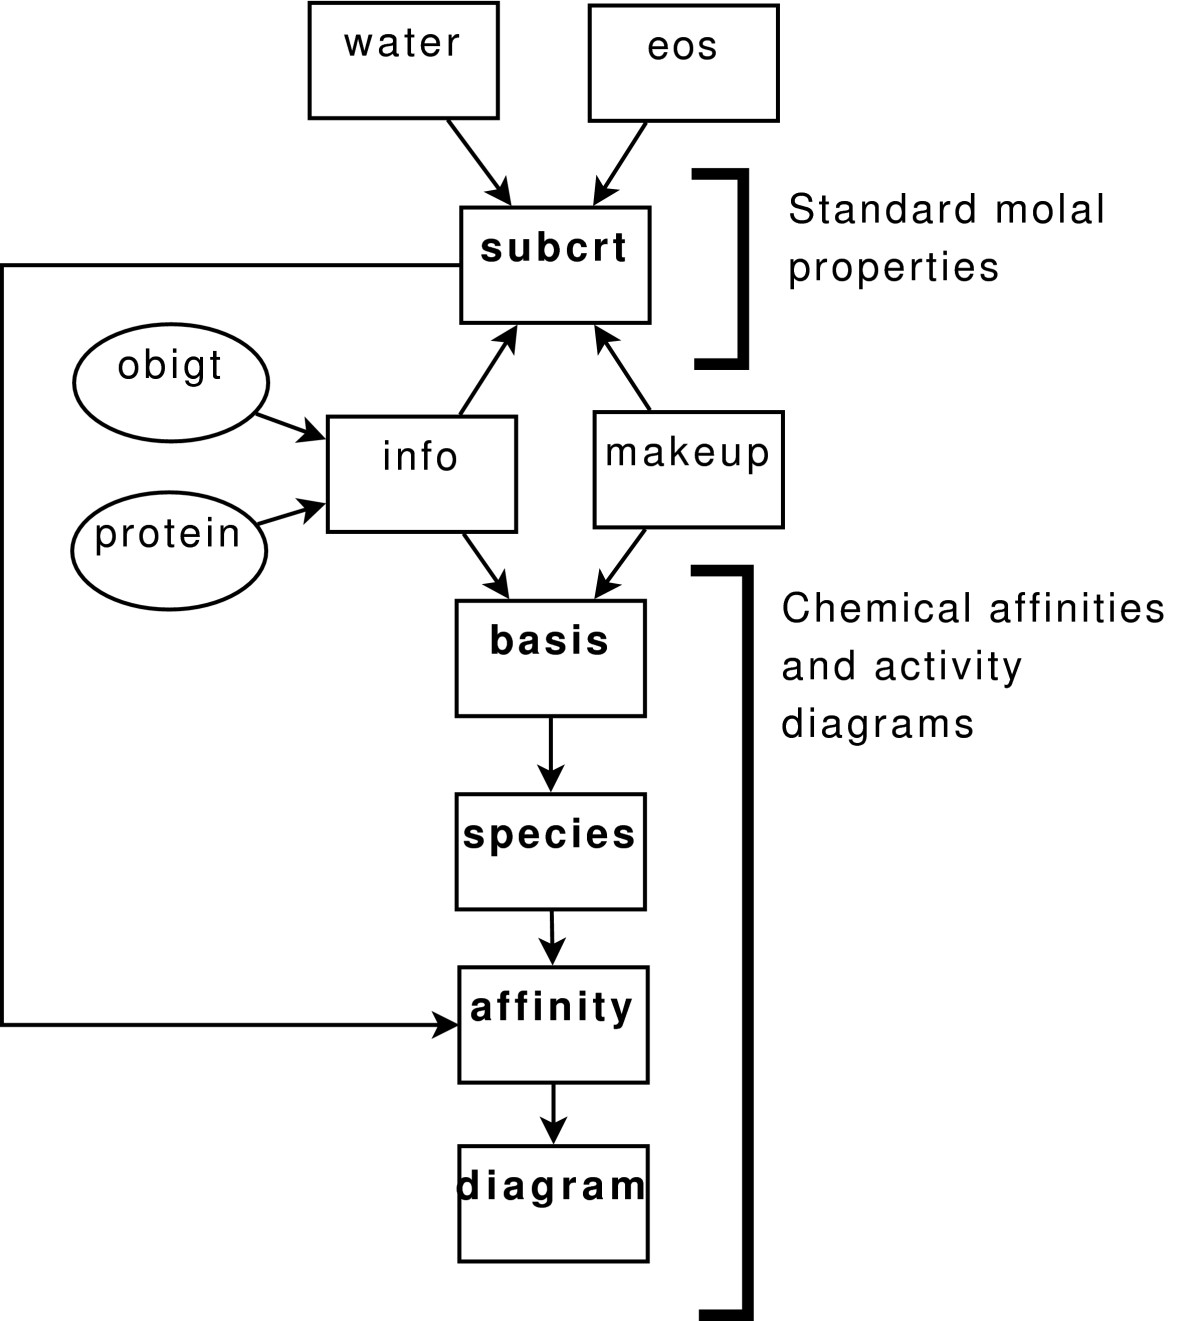 http://static-content.springer.com/image/art%3A10.1186%2F1467-4866-9-10/MediaObjects/12932_2008_Article_91_Fig1_HTML.jpg